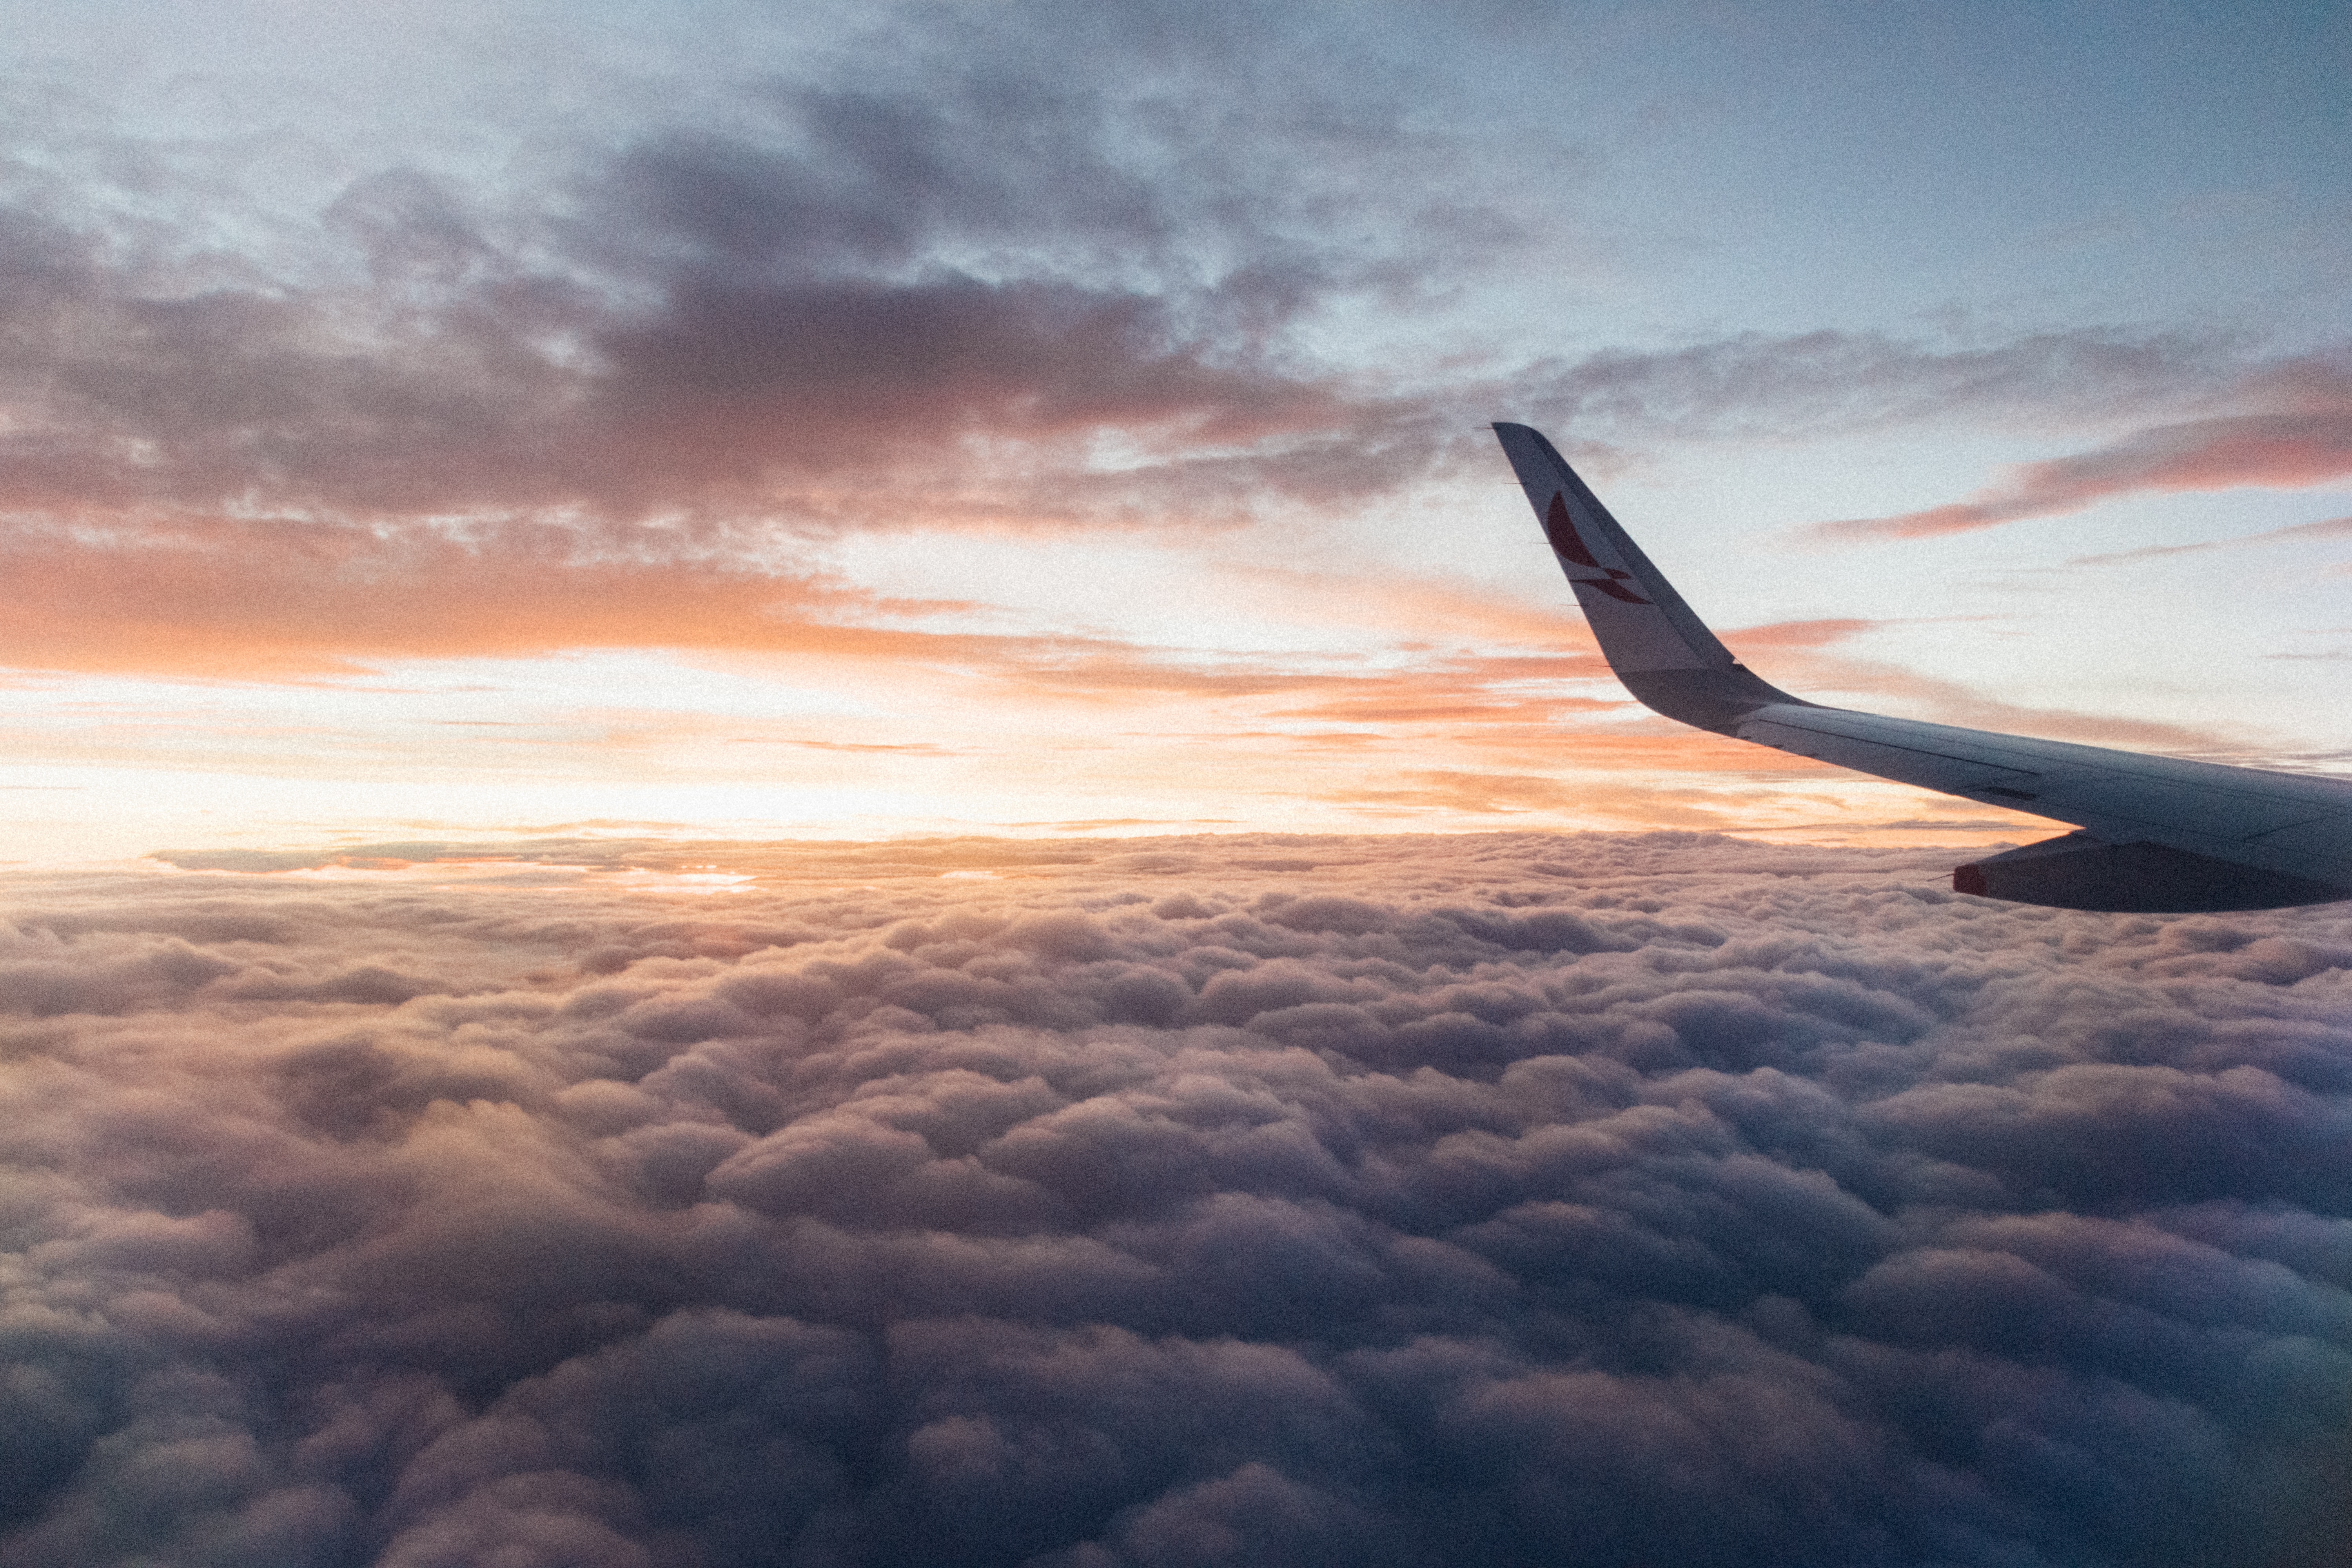 sunset at the cloud line with the wing of the airplane in the foreground